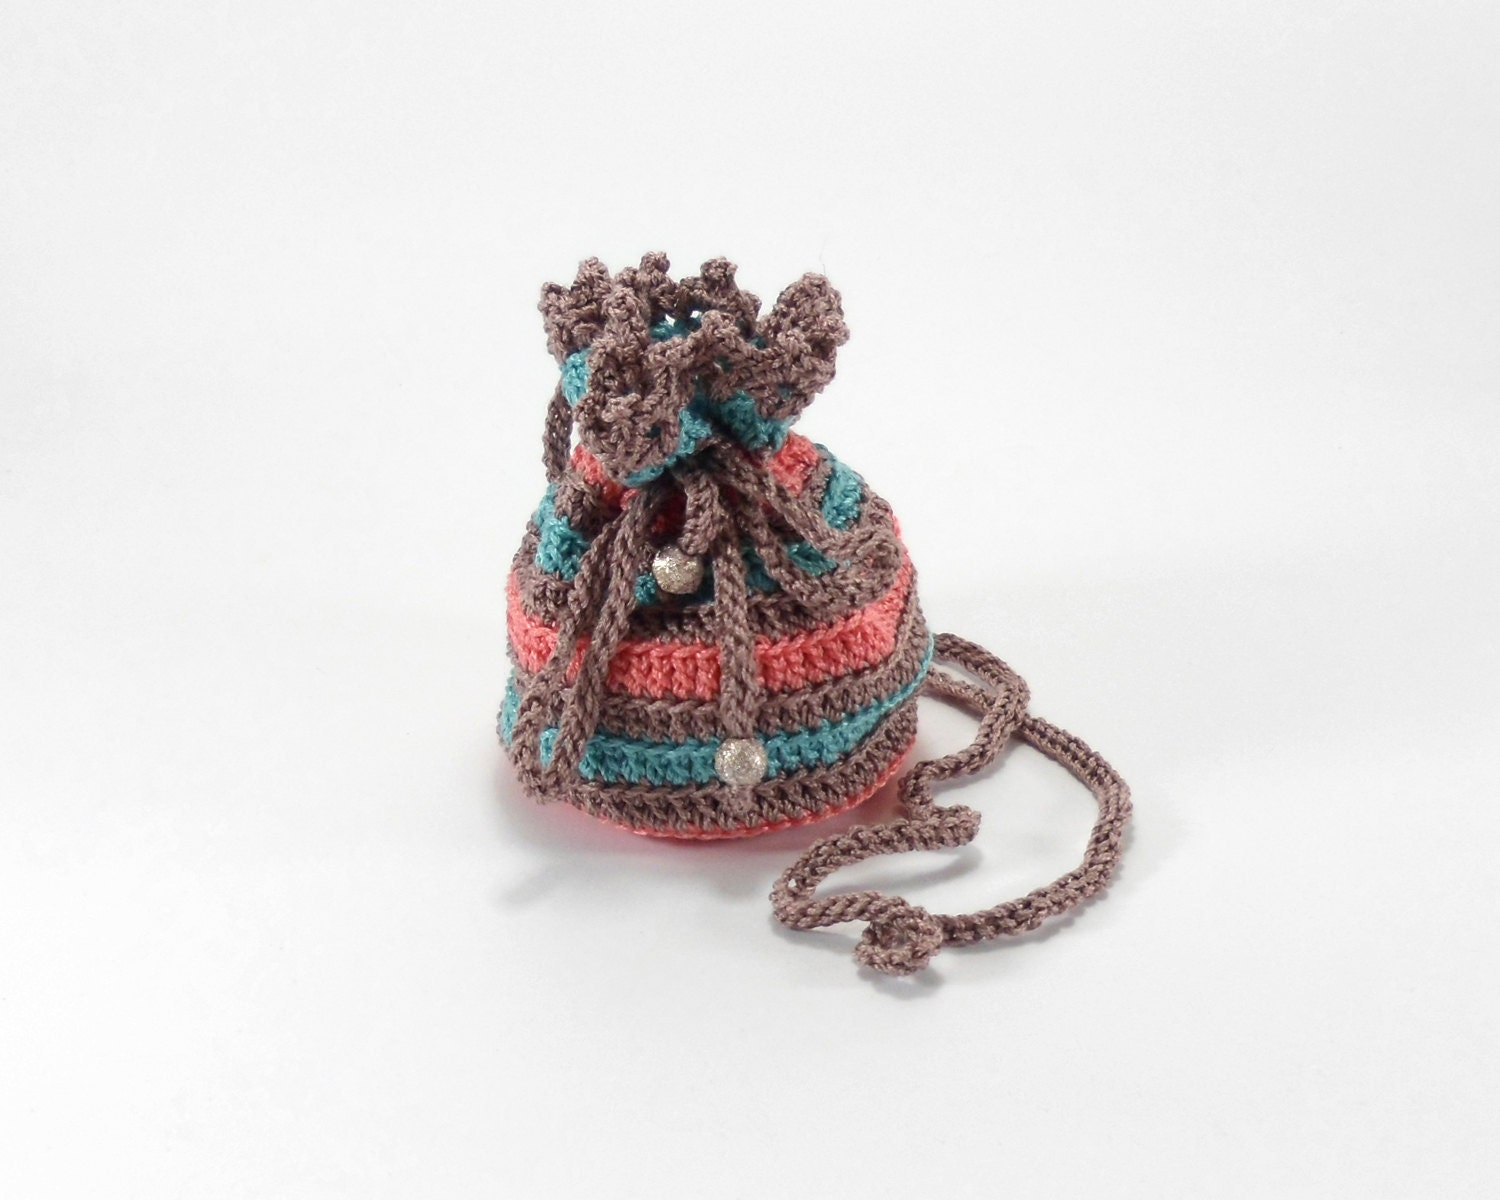 Crochet Small Bag : ... Small Crochet Pouch, Jewelry Bag with Drawstring, Christmas Gift Bag